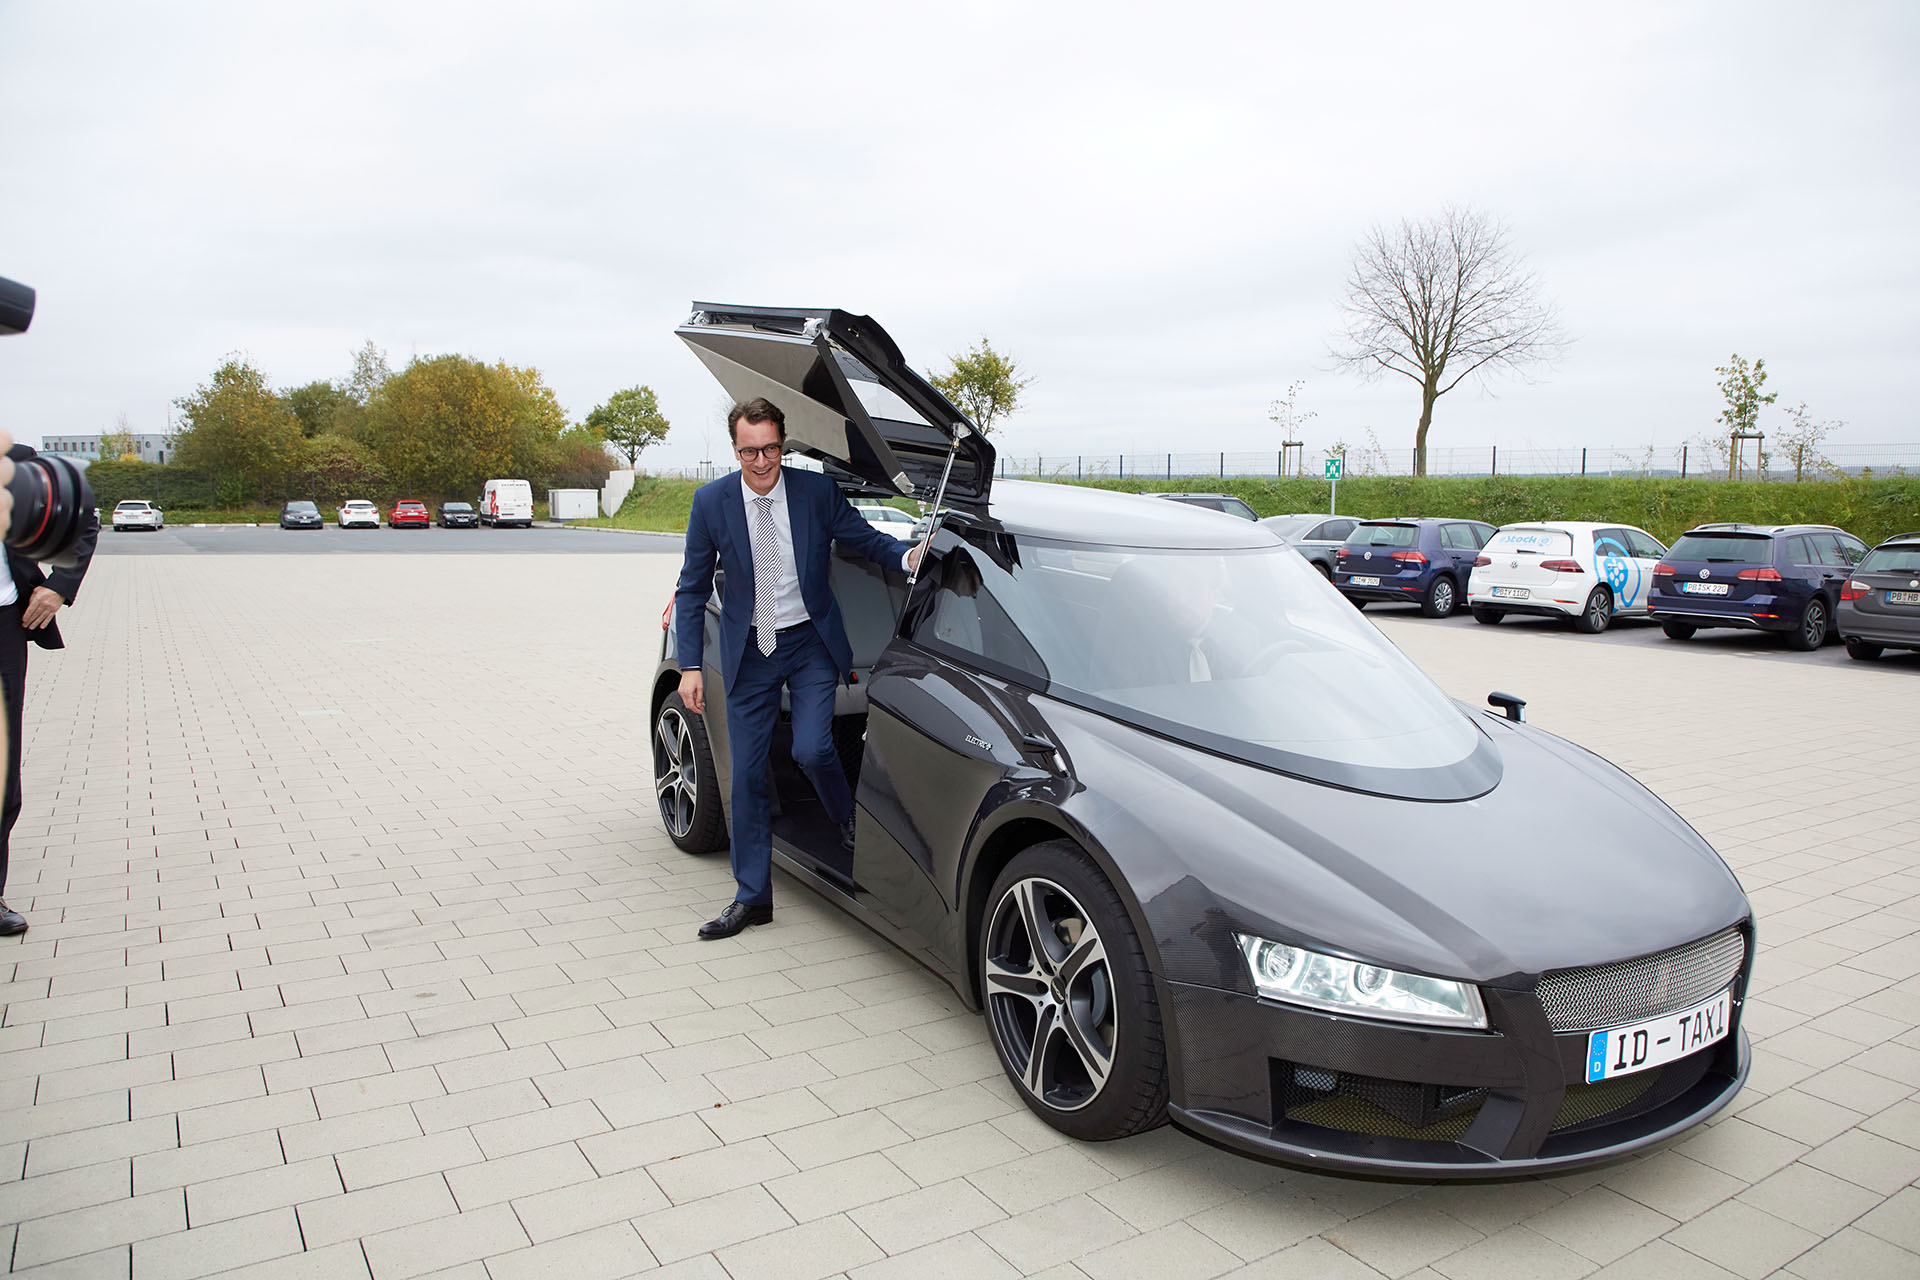 Hendrik Wüst leaves the ID-Taxi prototype visibly impressed after his test drive